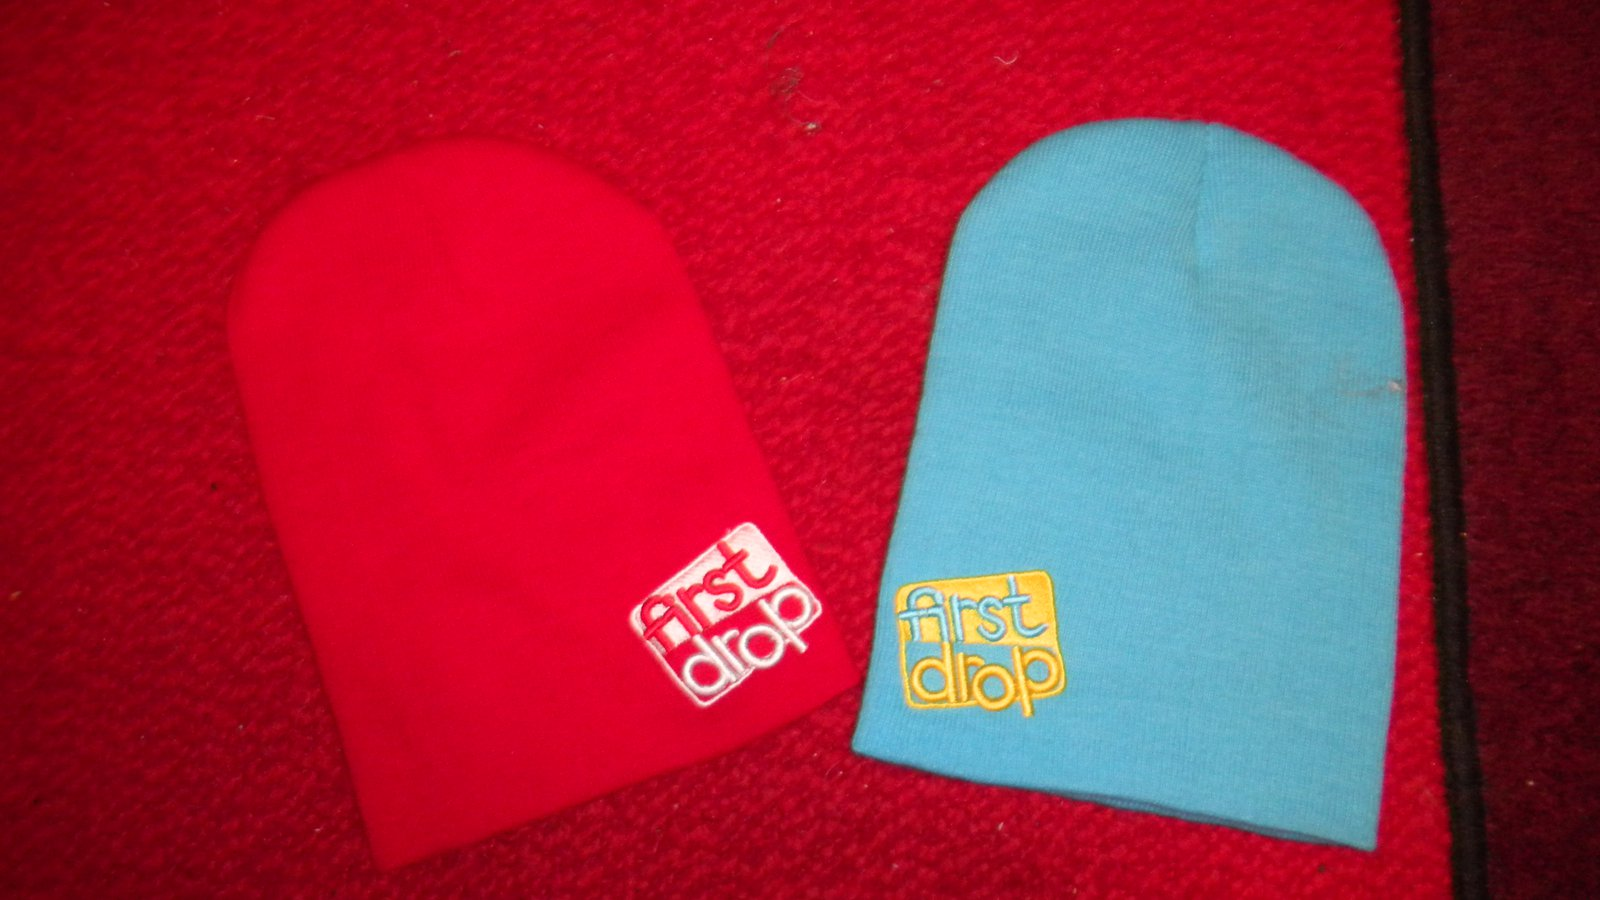 first drop hats